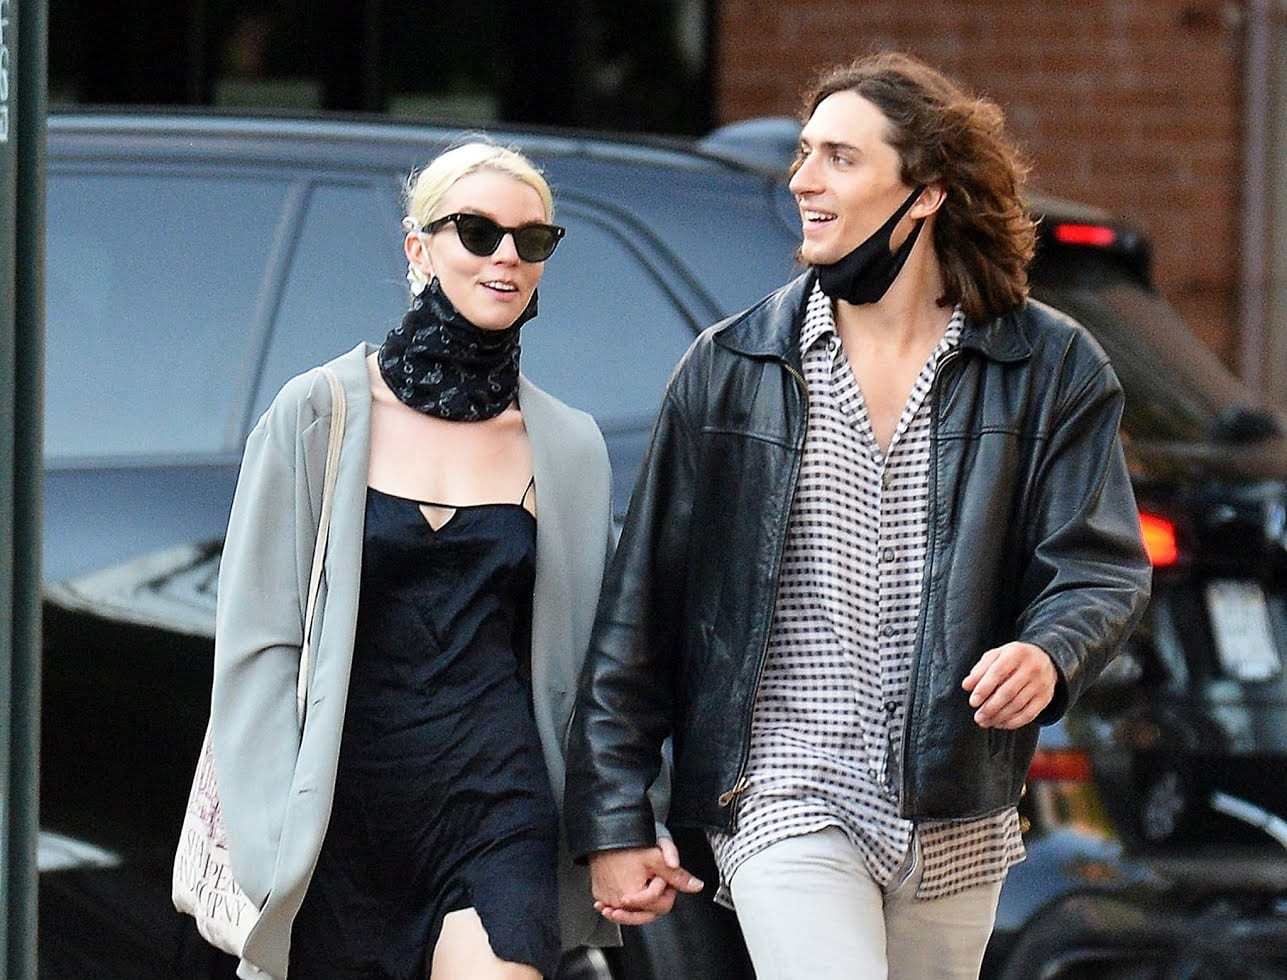 Who Is Anya Taylor-Joy's Boyfriend? Whom Is The British Actress-Model Spotted With?